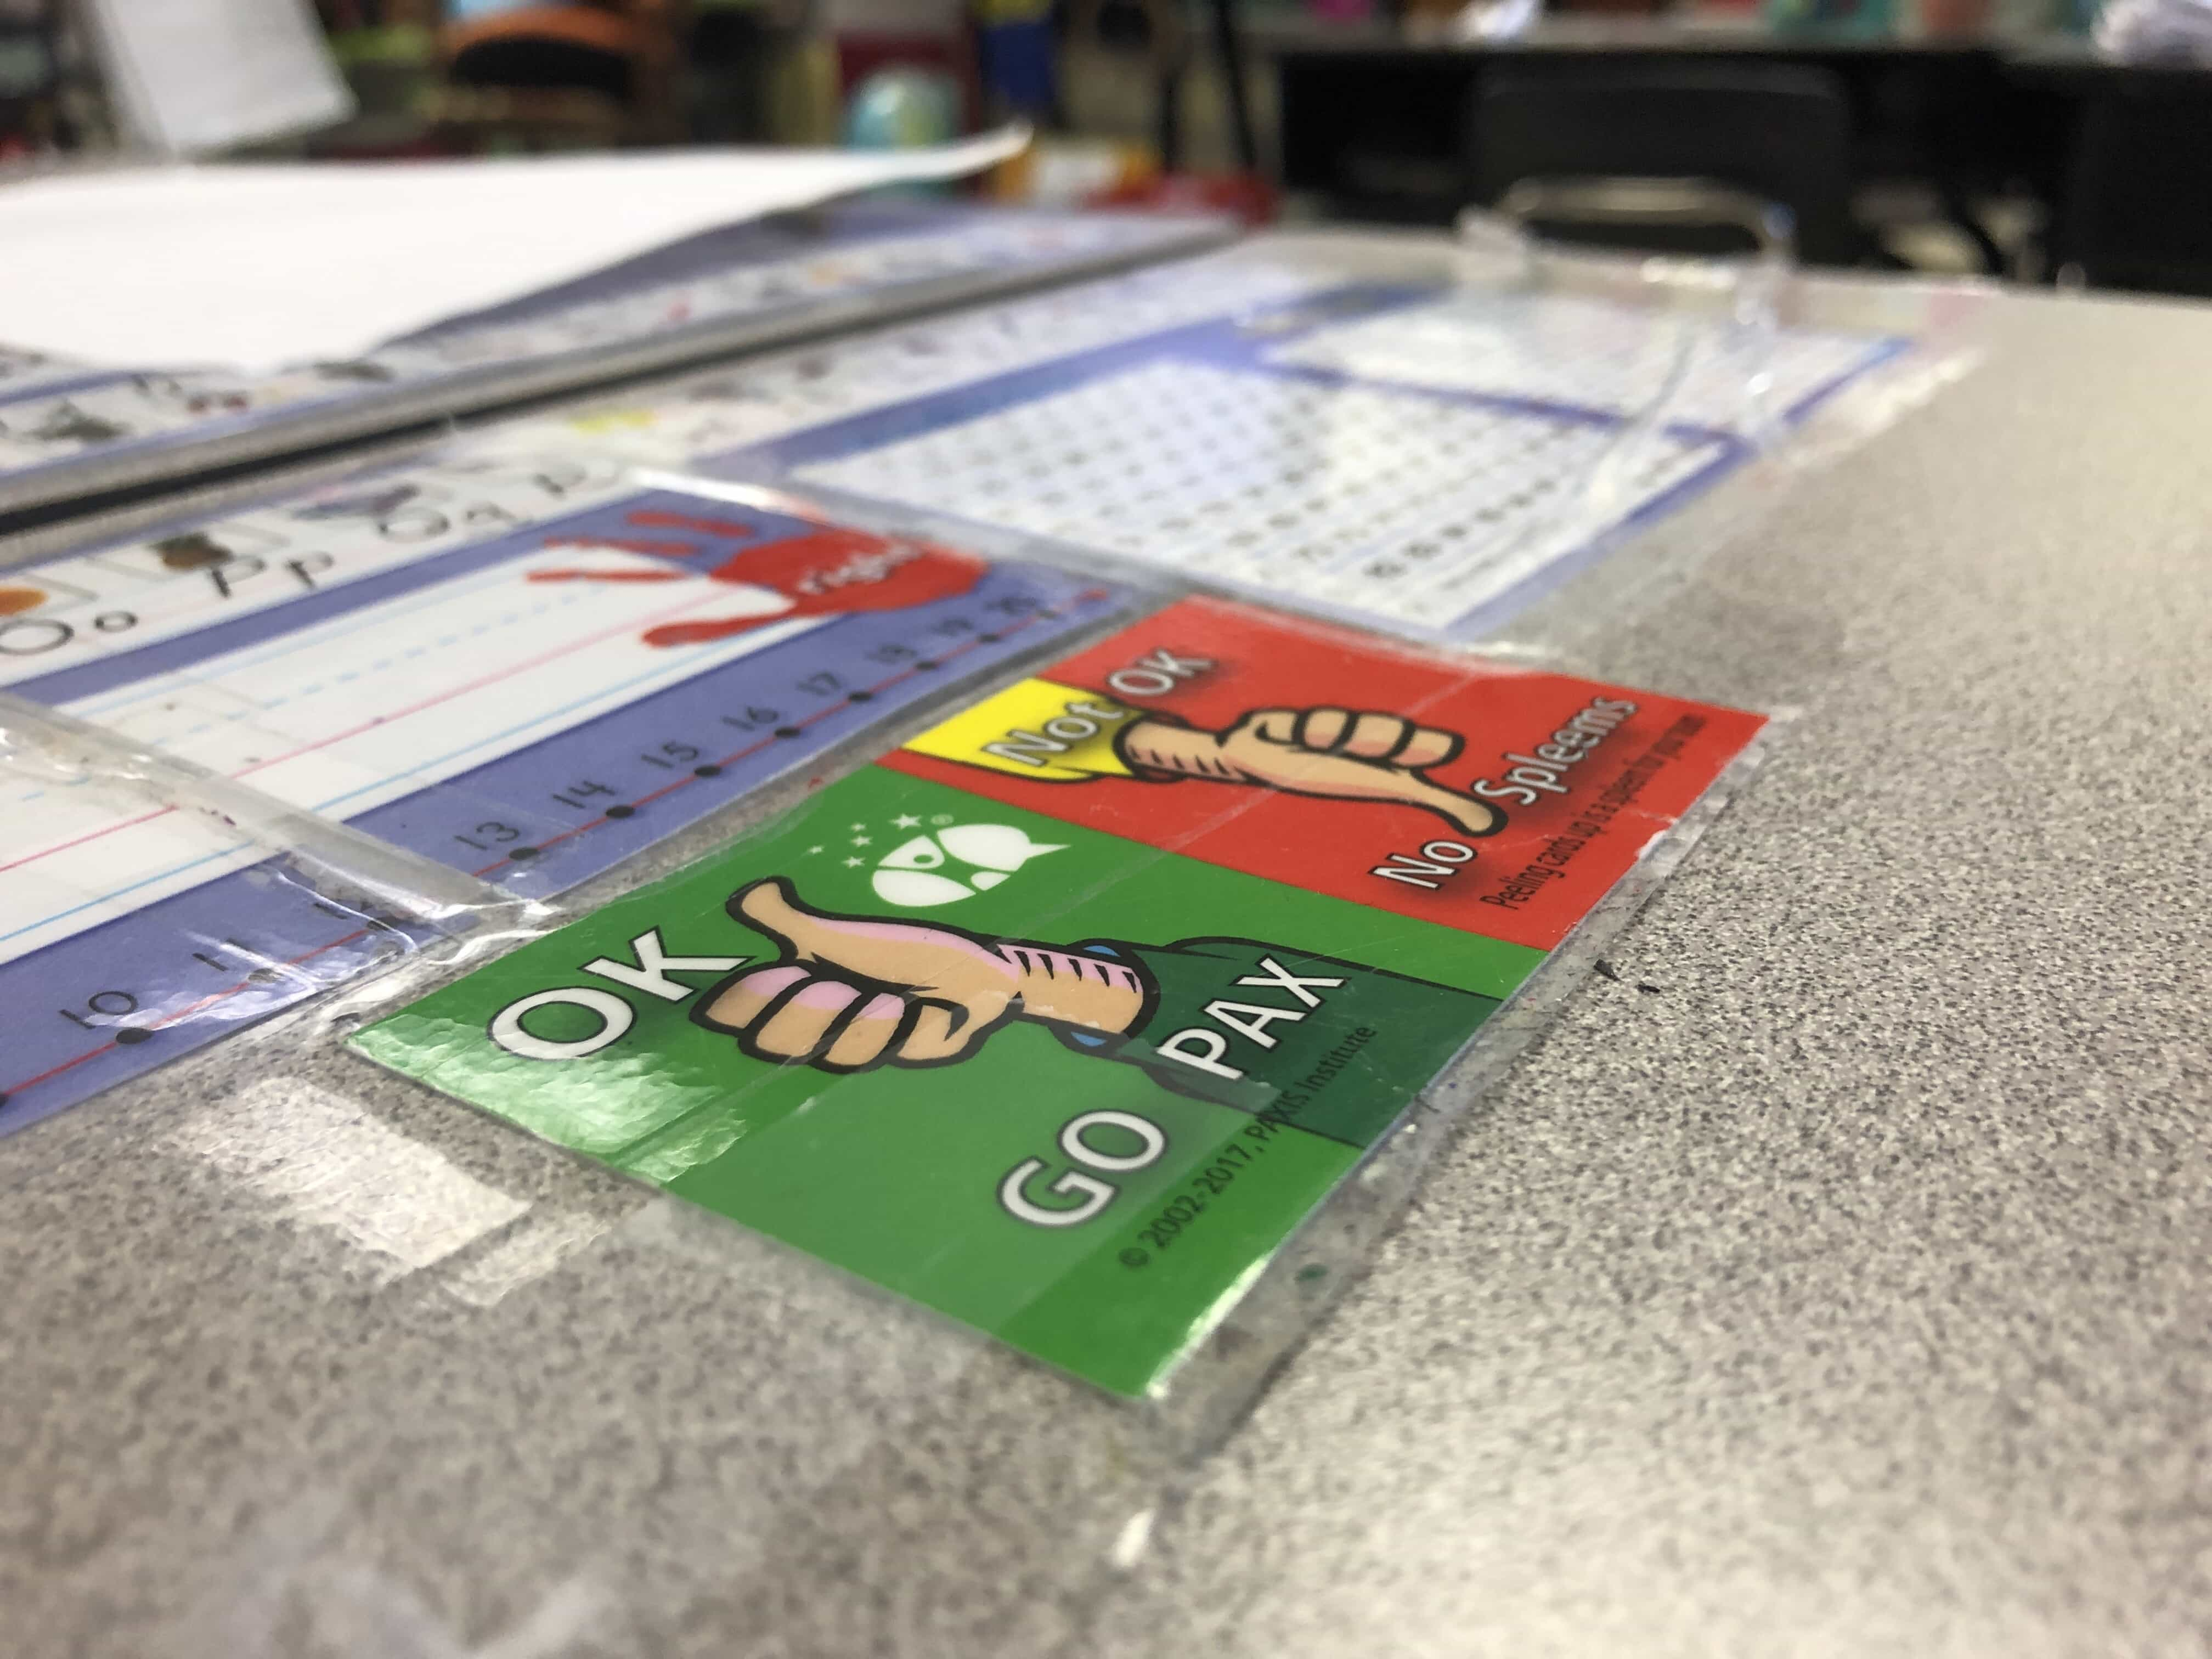 A student's desk at Dr. King Elementary School in Syracuse, NY, where restorative behavioral methods are being implemented.